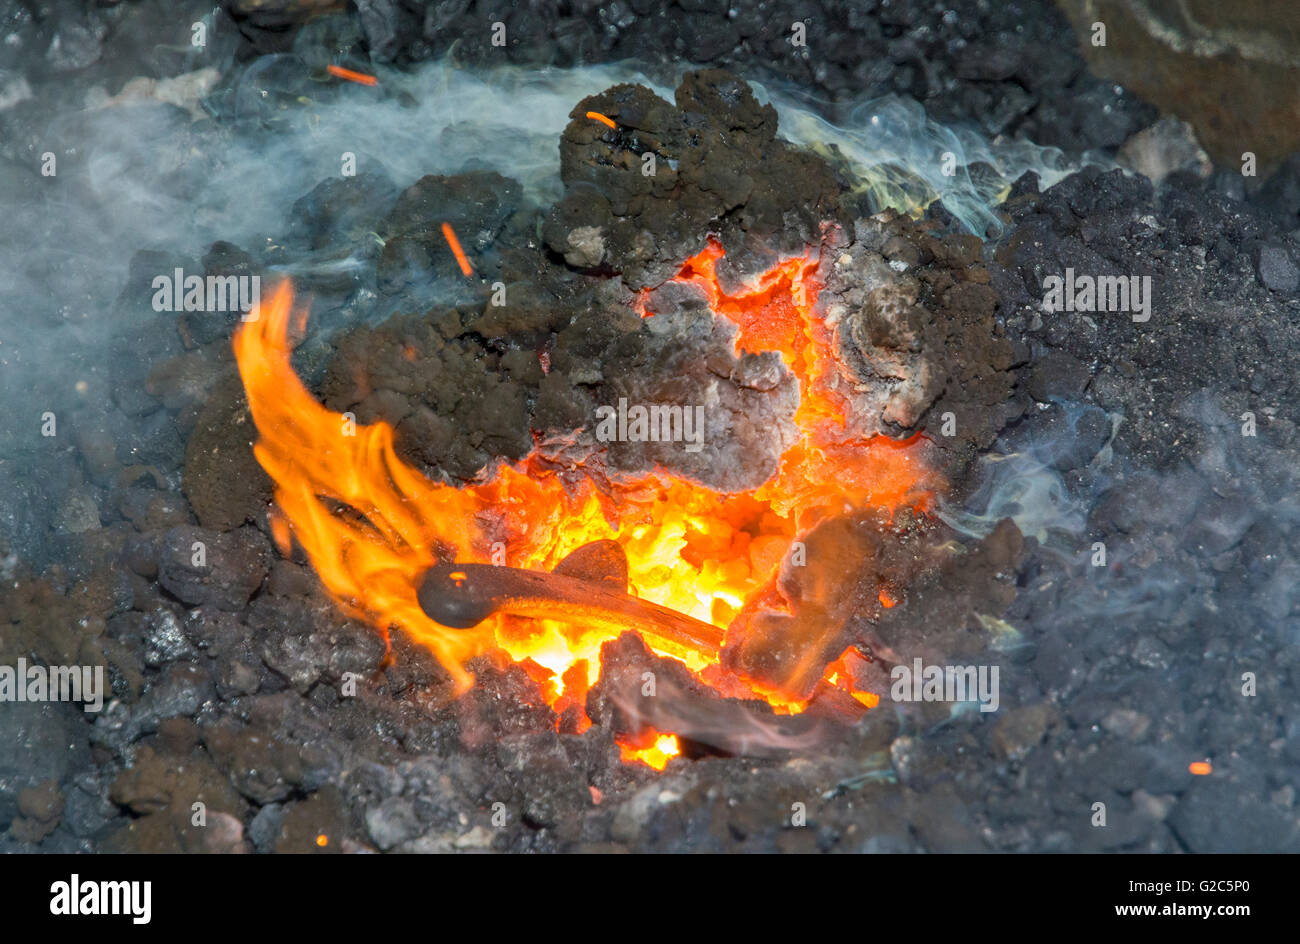 California, Coloma, Marshall Gold Discovery State Historic Park, blacksmith, red hot horseshoe heated in forge - Stock Image